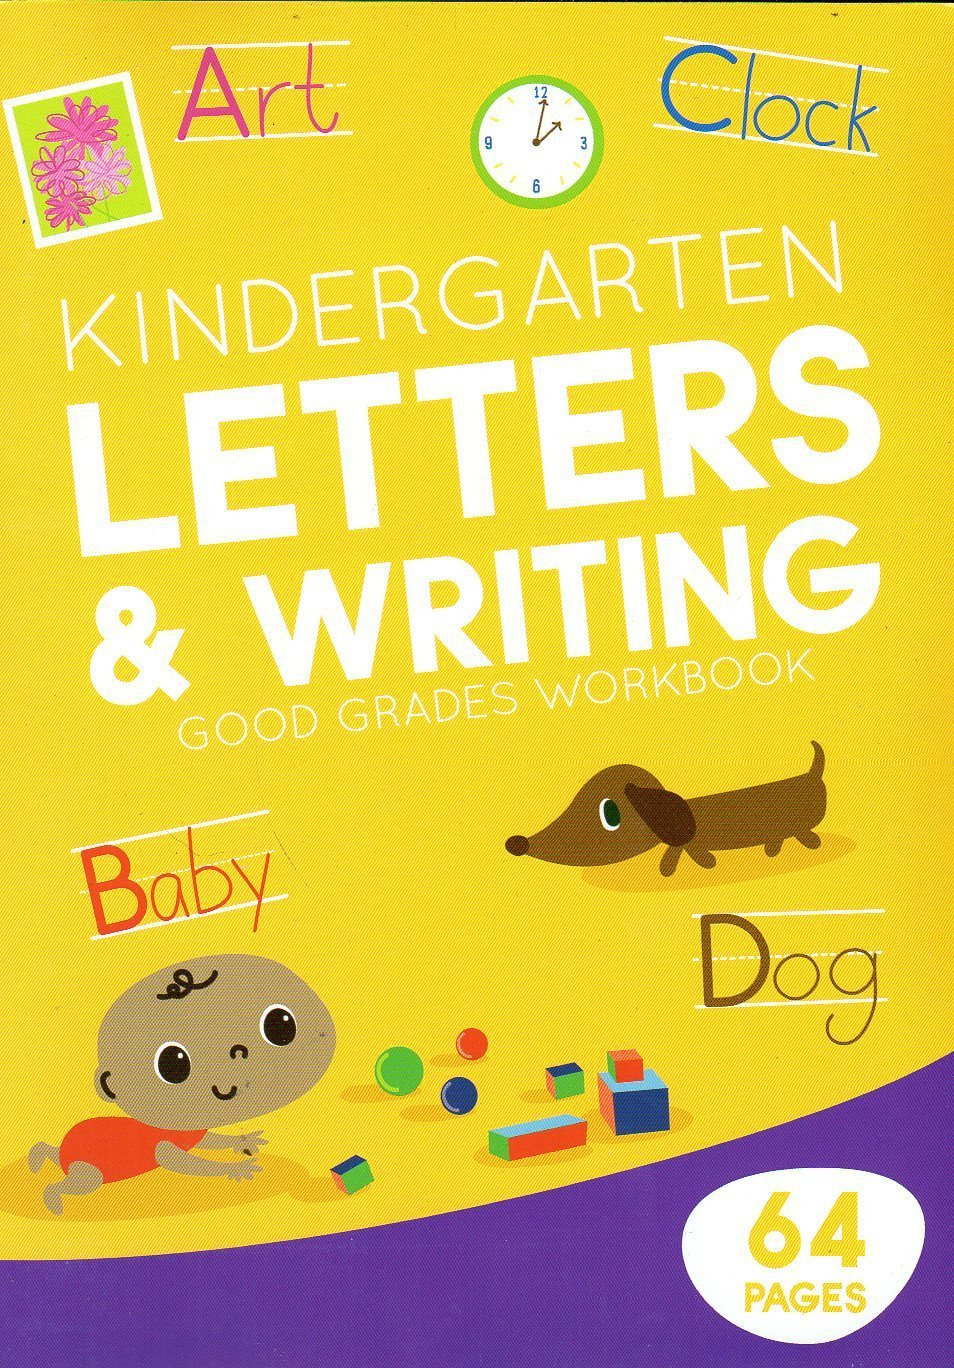 Educational Workbooks - Kindergarten - Letters & Writing - v3